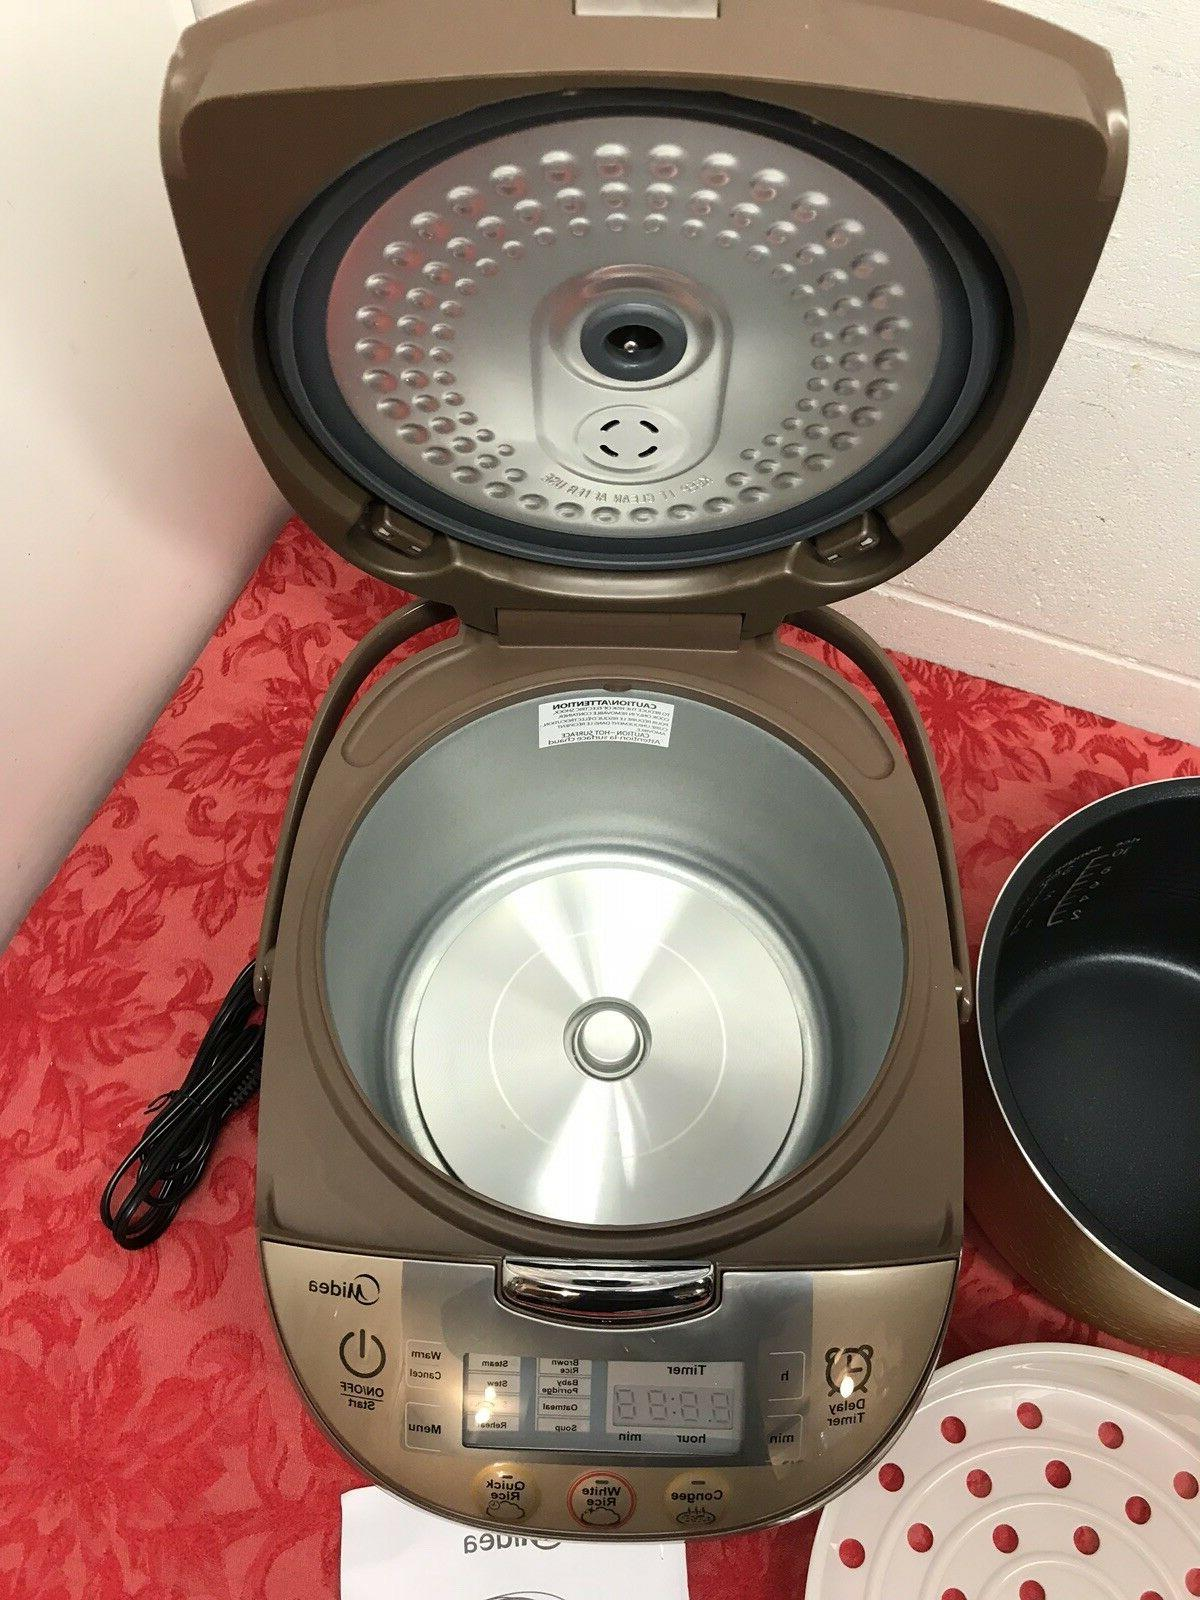 Midea Mb-fs5017 C. Smart Steamer Slow New Other